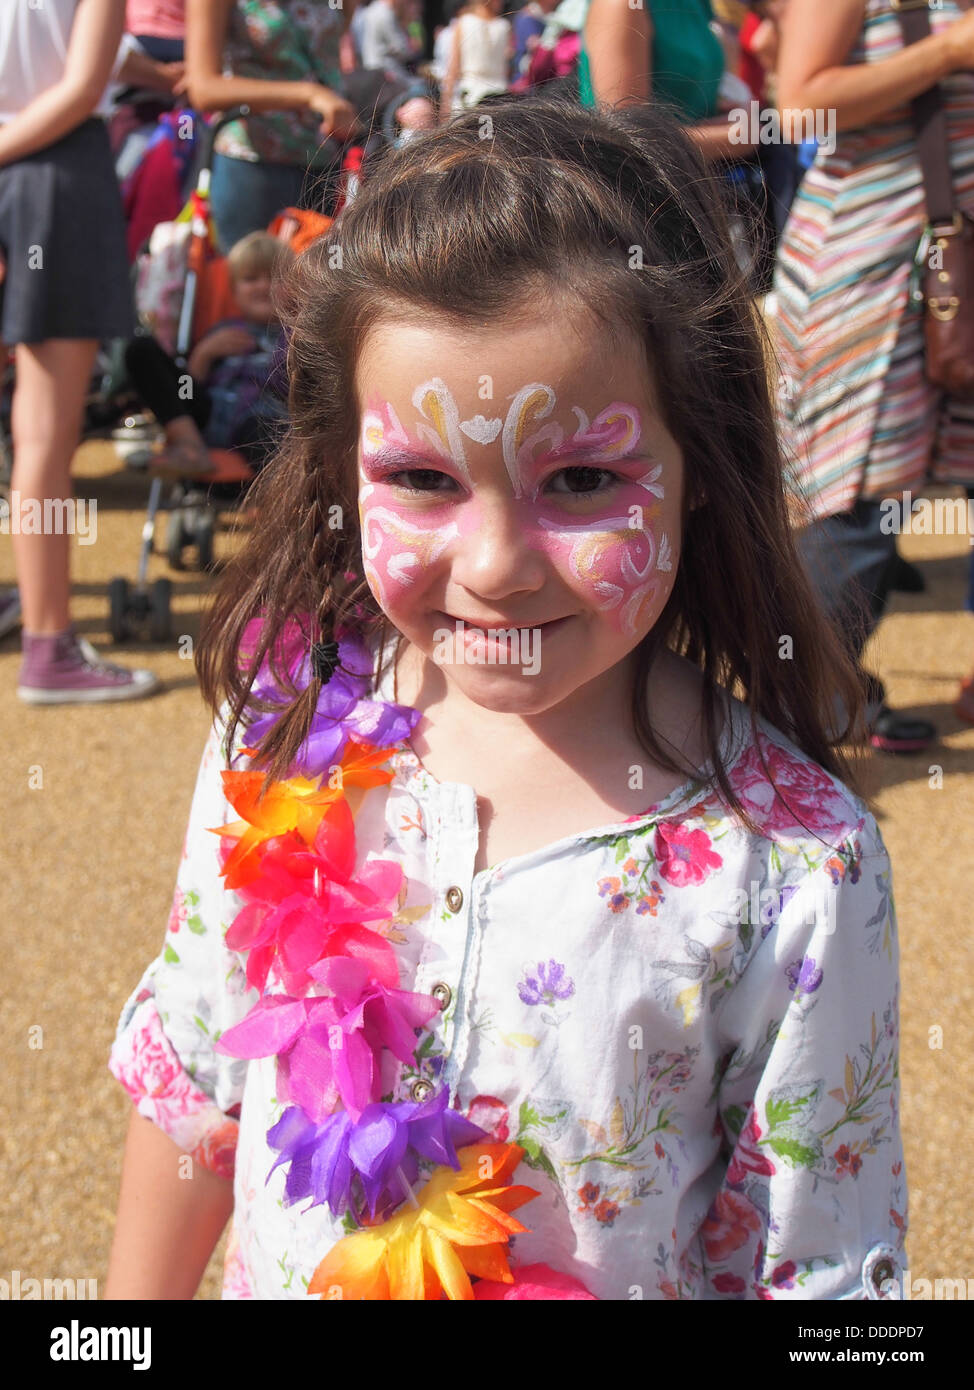 Young girl with her face painted and wearing a garland of flowers at a summer festival - Stock Image